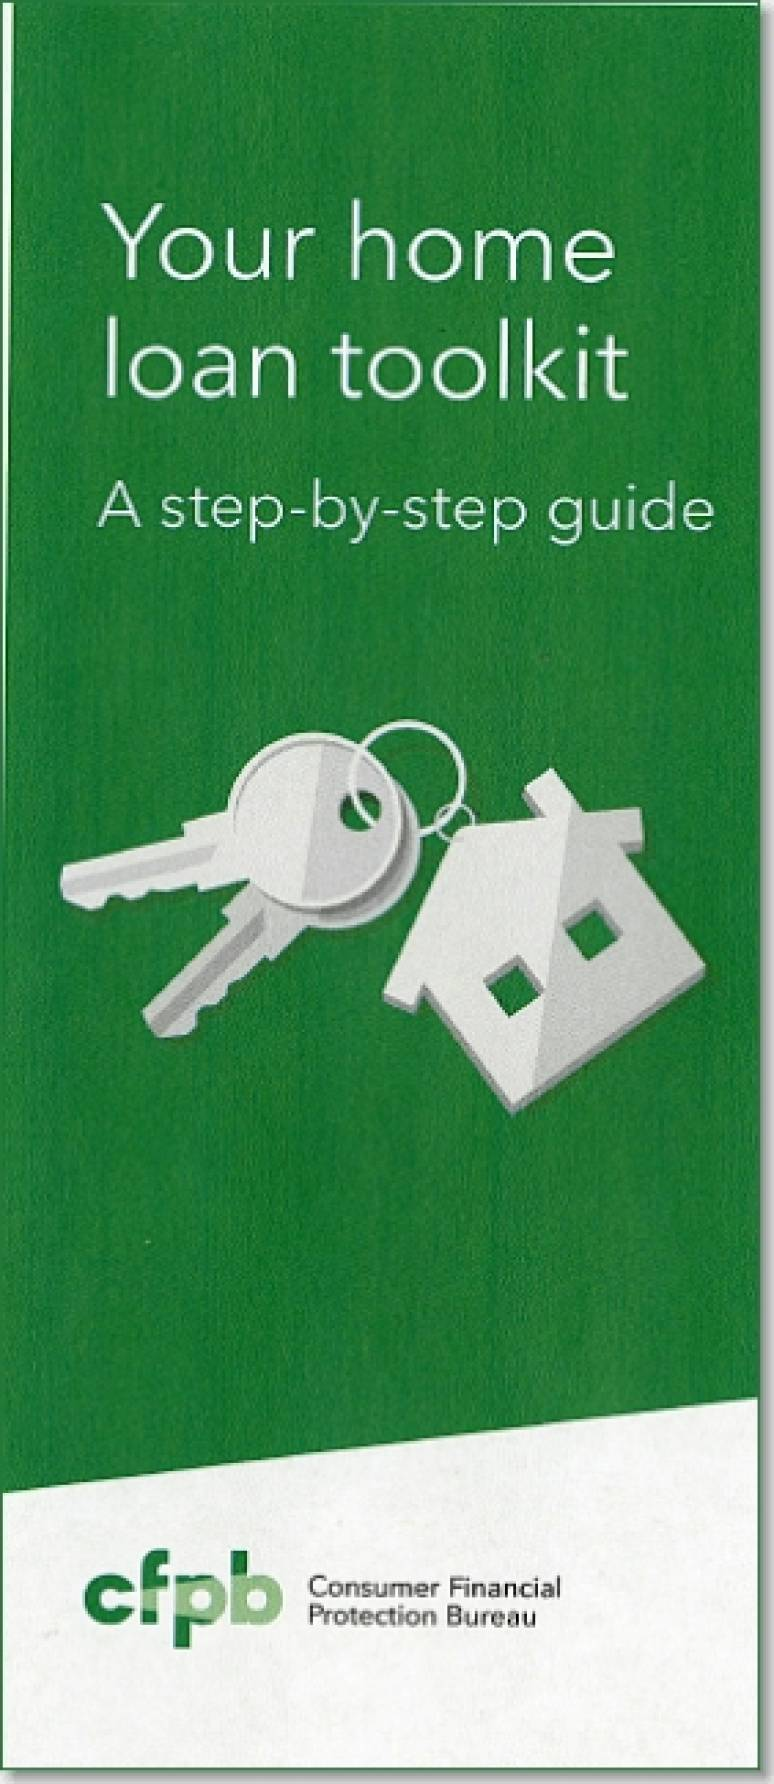 Your Home Loan Toolkit: A Step by Step Guide (Small Version) (Package of 100)